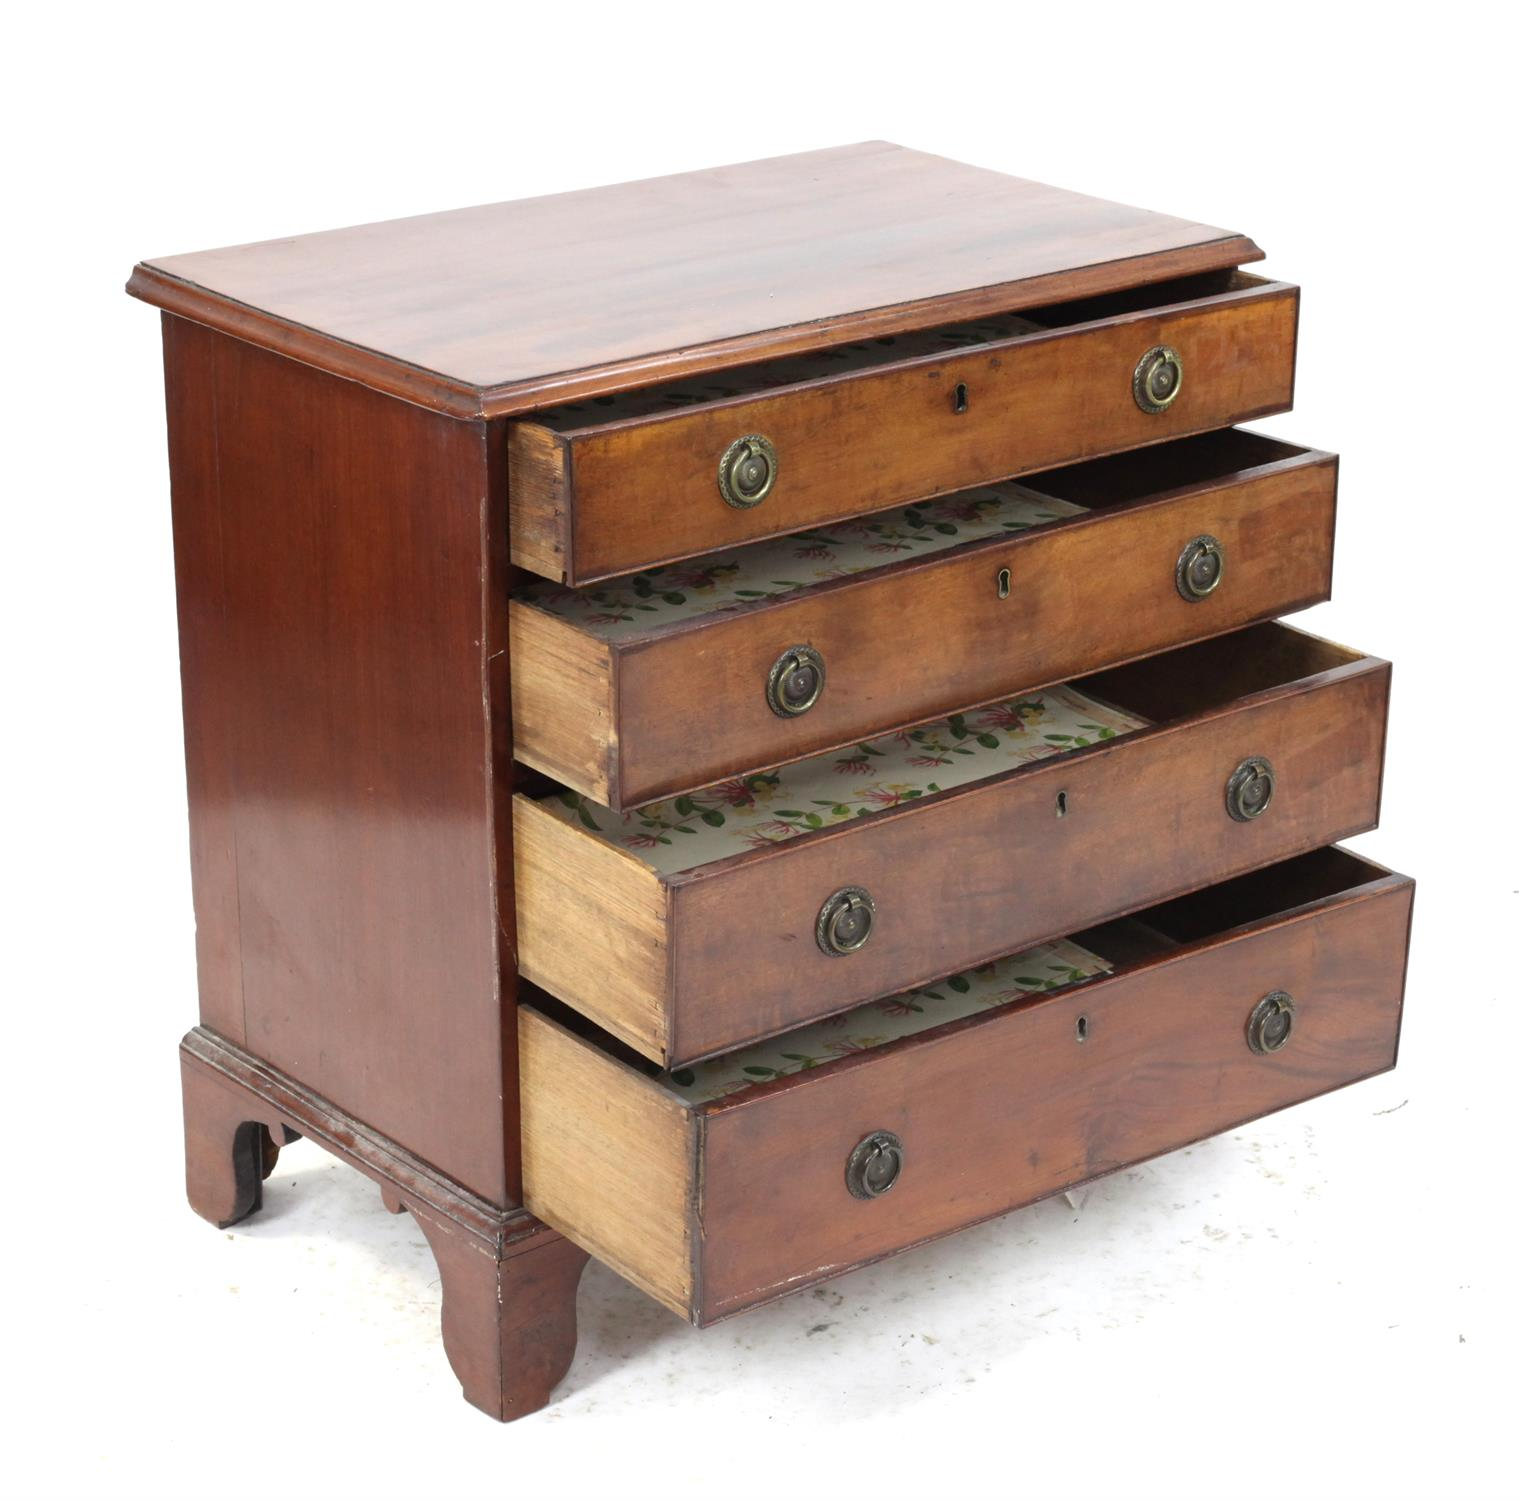 19th century mahogany chest of four graduated drawers on bracket feet, H76 x W75 x D44cm - Image 3 of 4